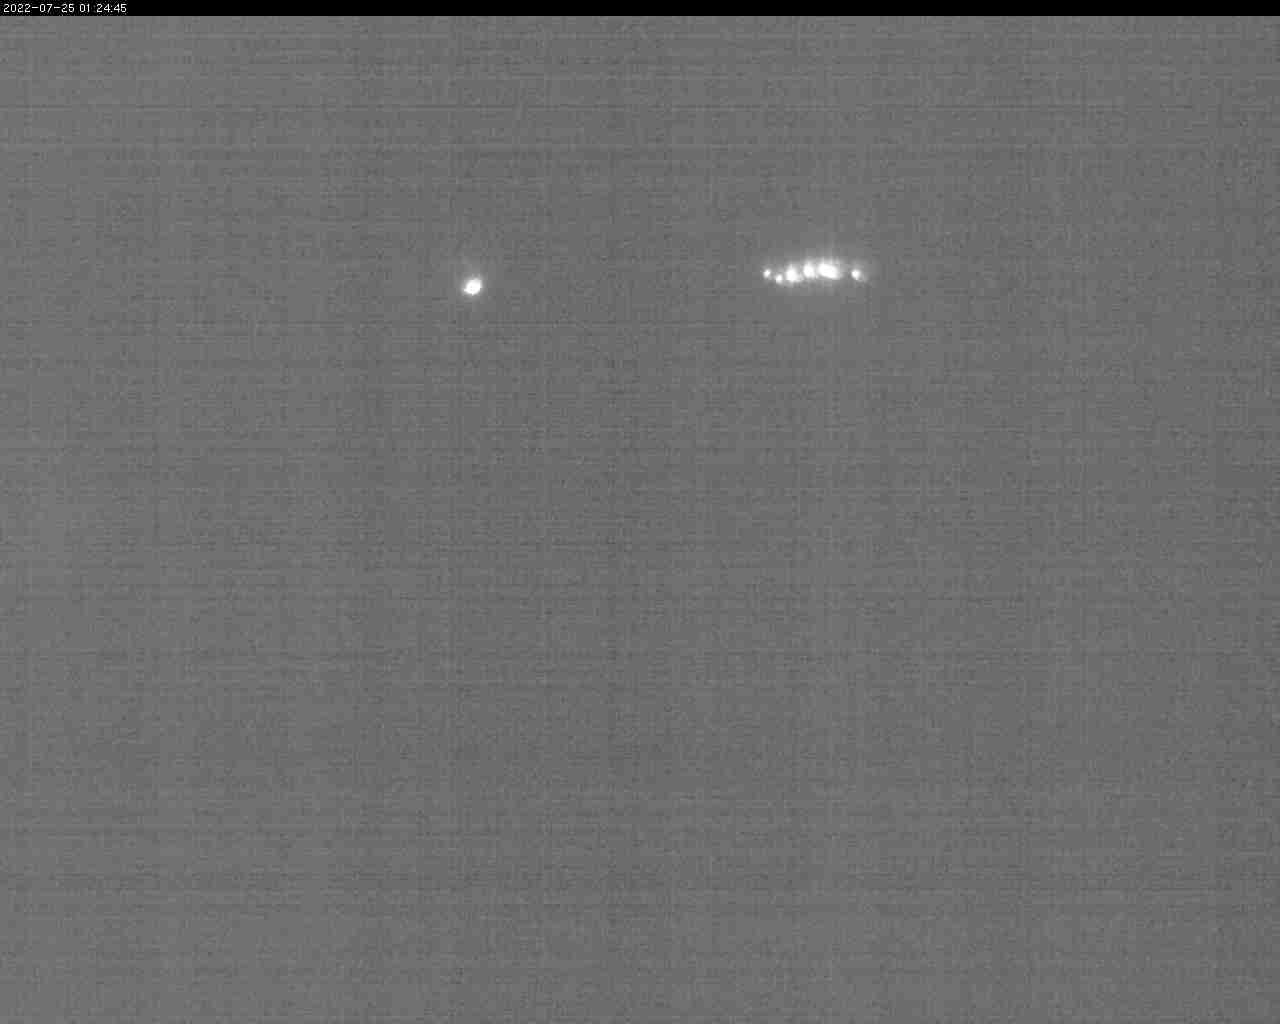 West Clyne WebCam